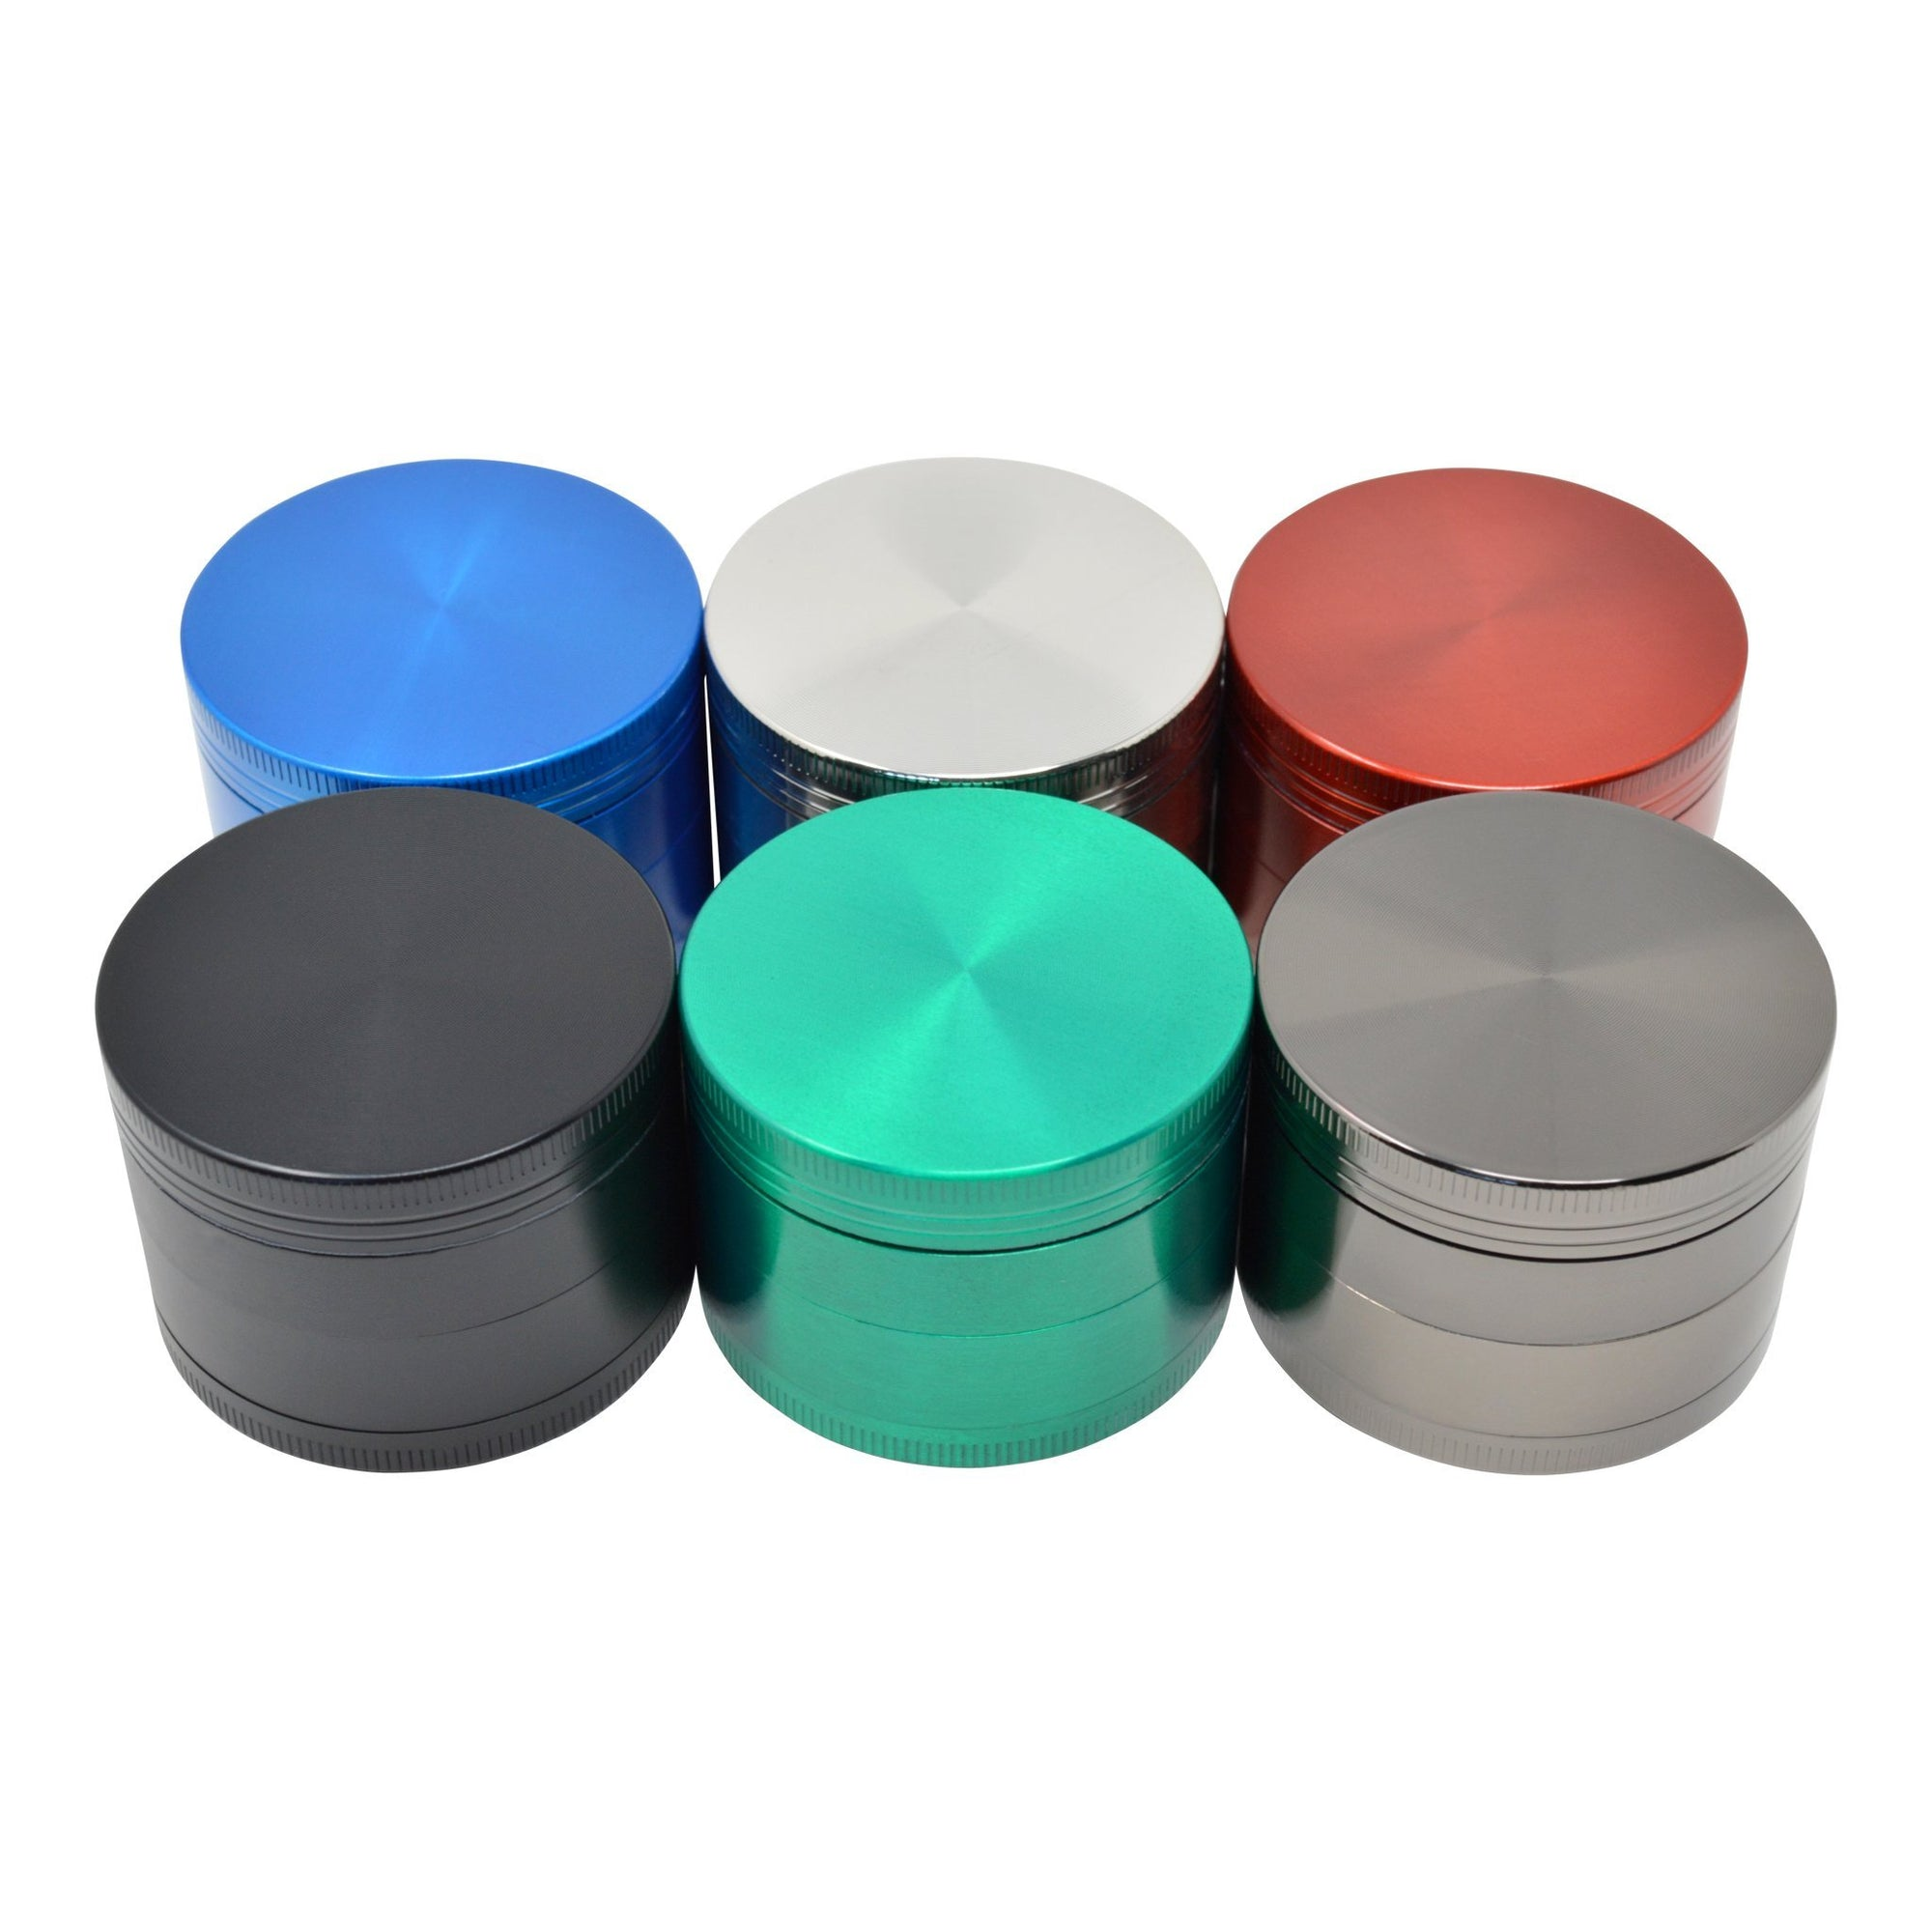 Top shot of 6 pieces closed lid 46mm metal grinder smoking accessory in different colors